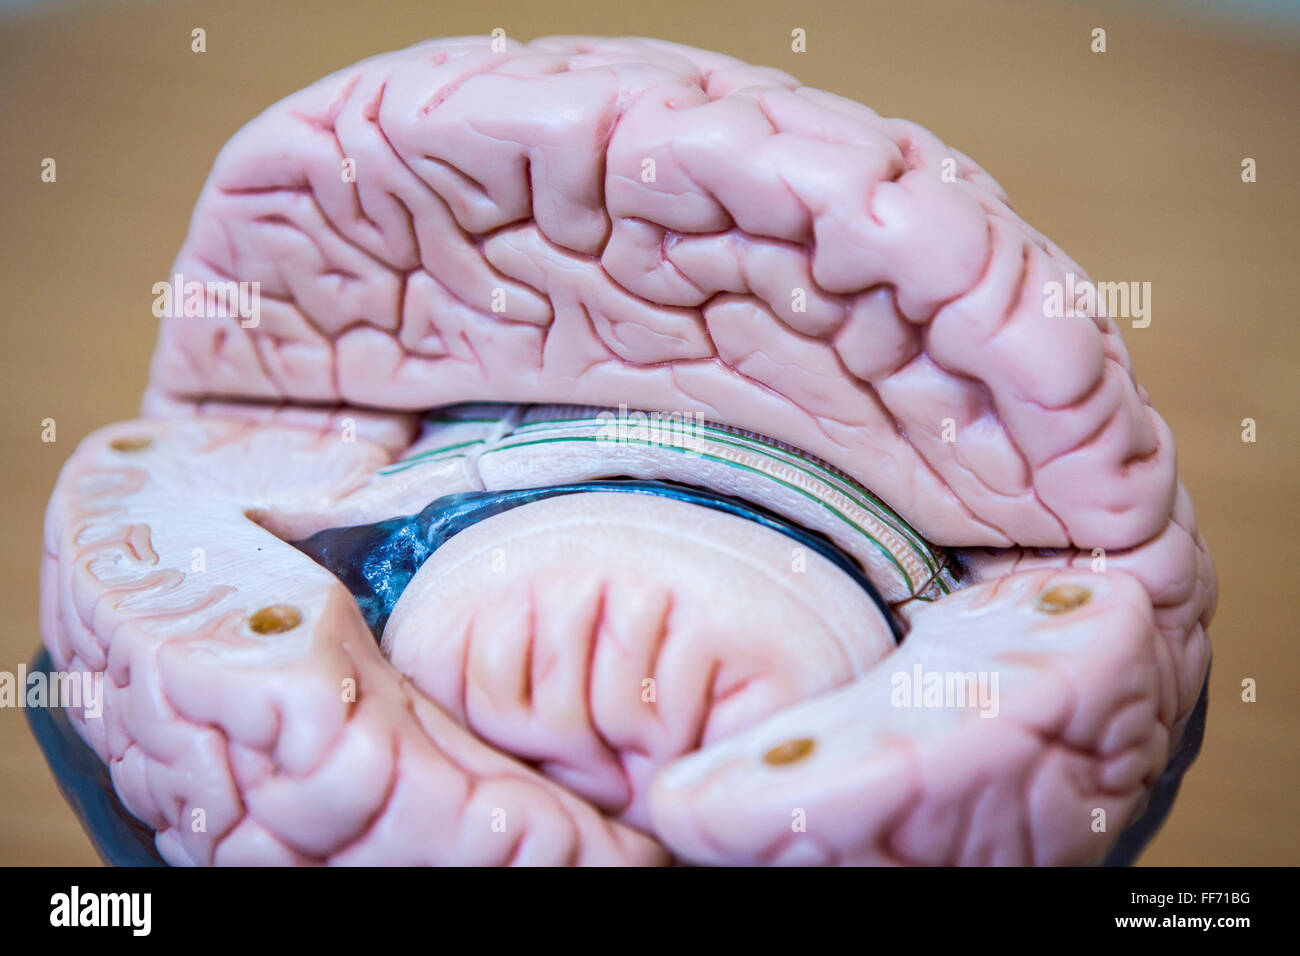 A Cross Section Model Of A Human Brain Showing The Inner And Outer